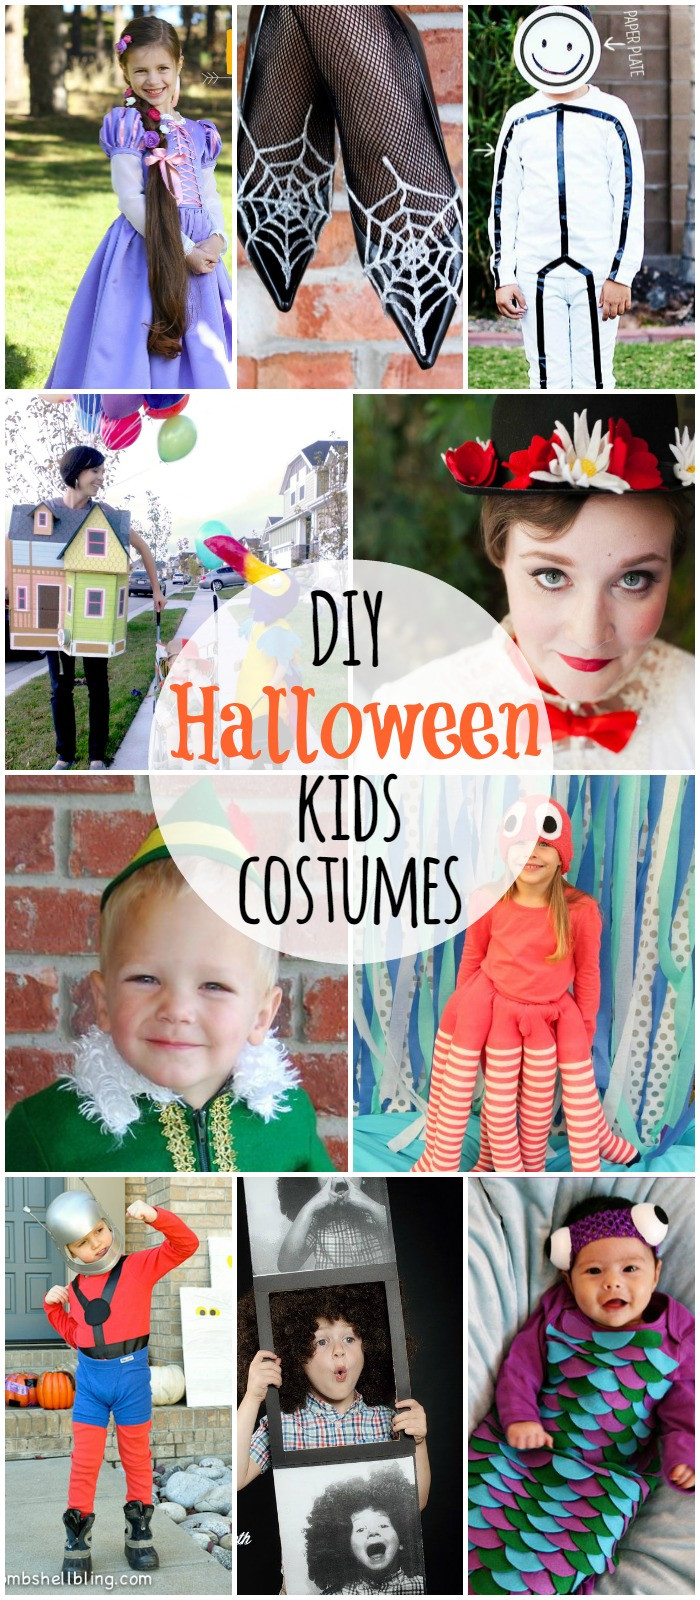 Best ideas about Easy DIY Halloween Costumes For Kids . Save or Pin DIY Halloween Kids Costumes Now.